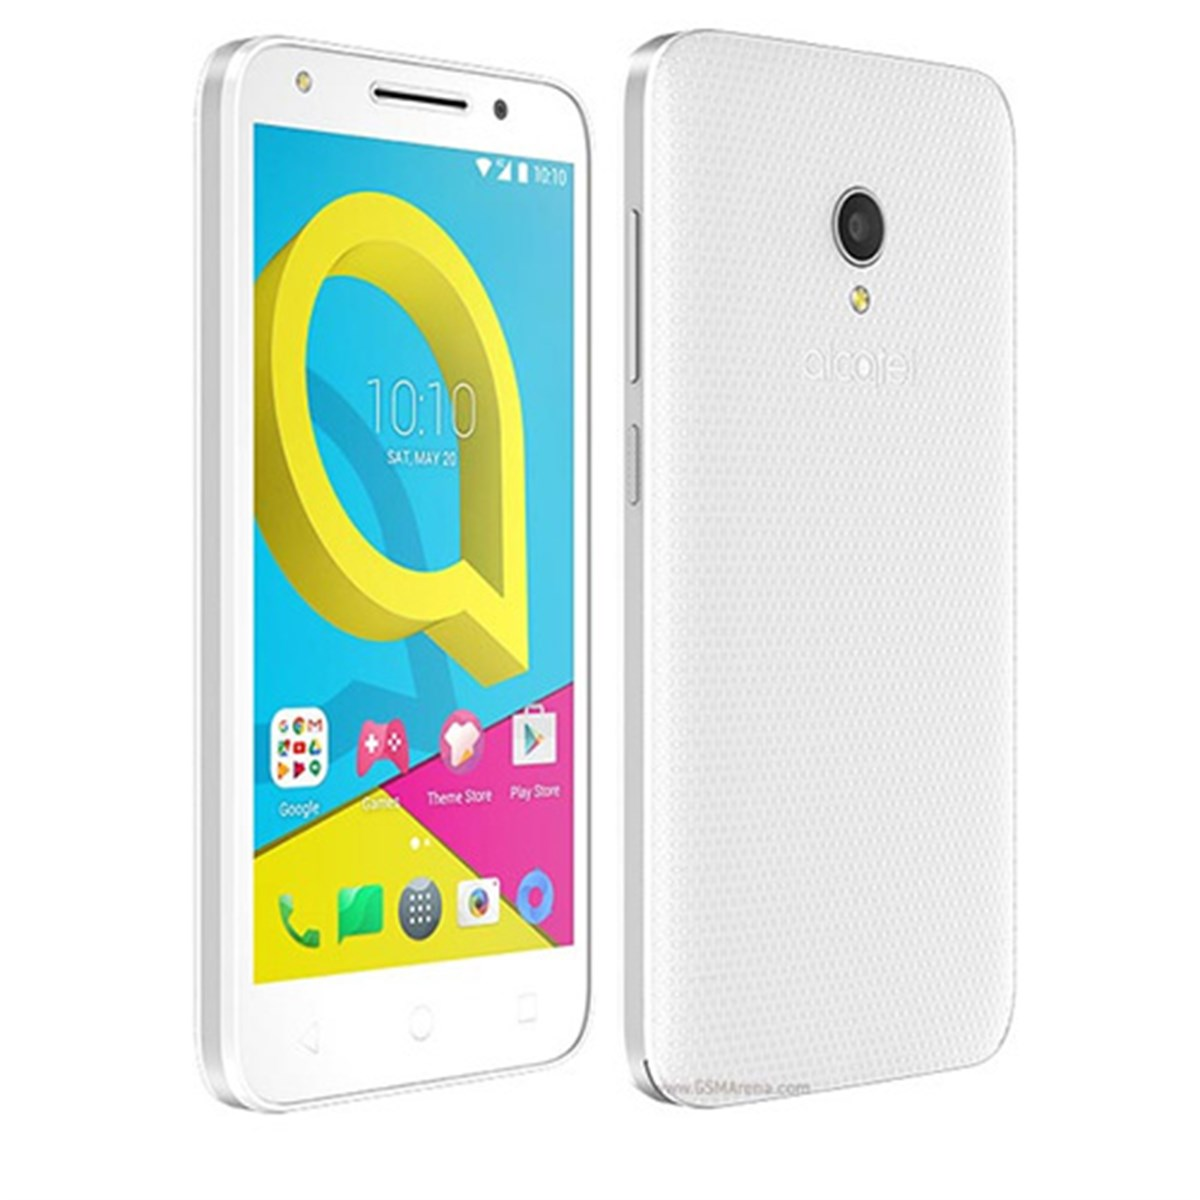 Alcatel U5 8 GB Beyaz